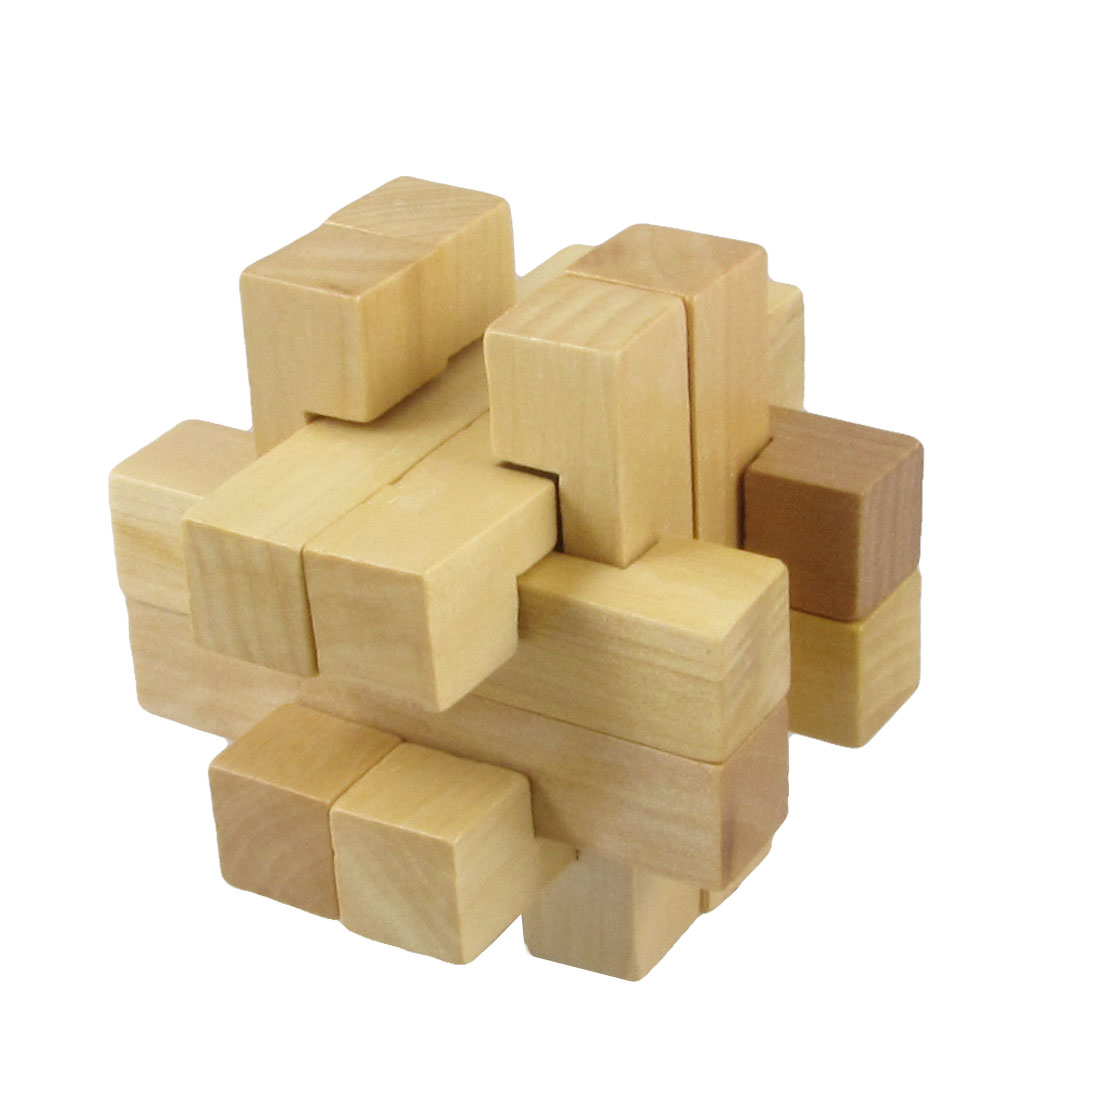 Child Brain Train Restore Wooden Intelligence Puzzle Sound Toy Plaything Gift